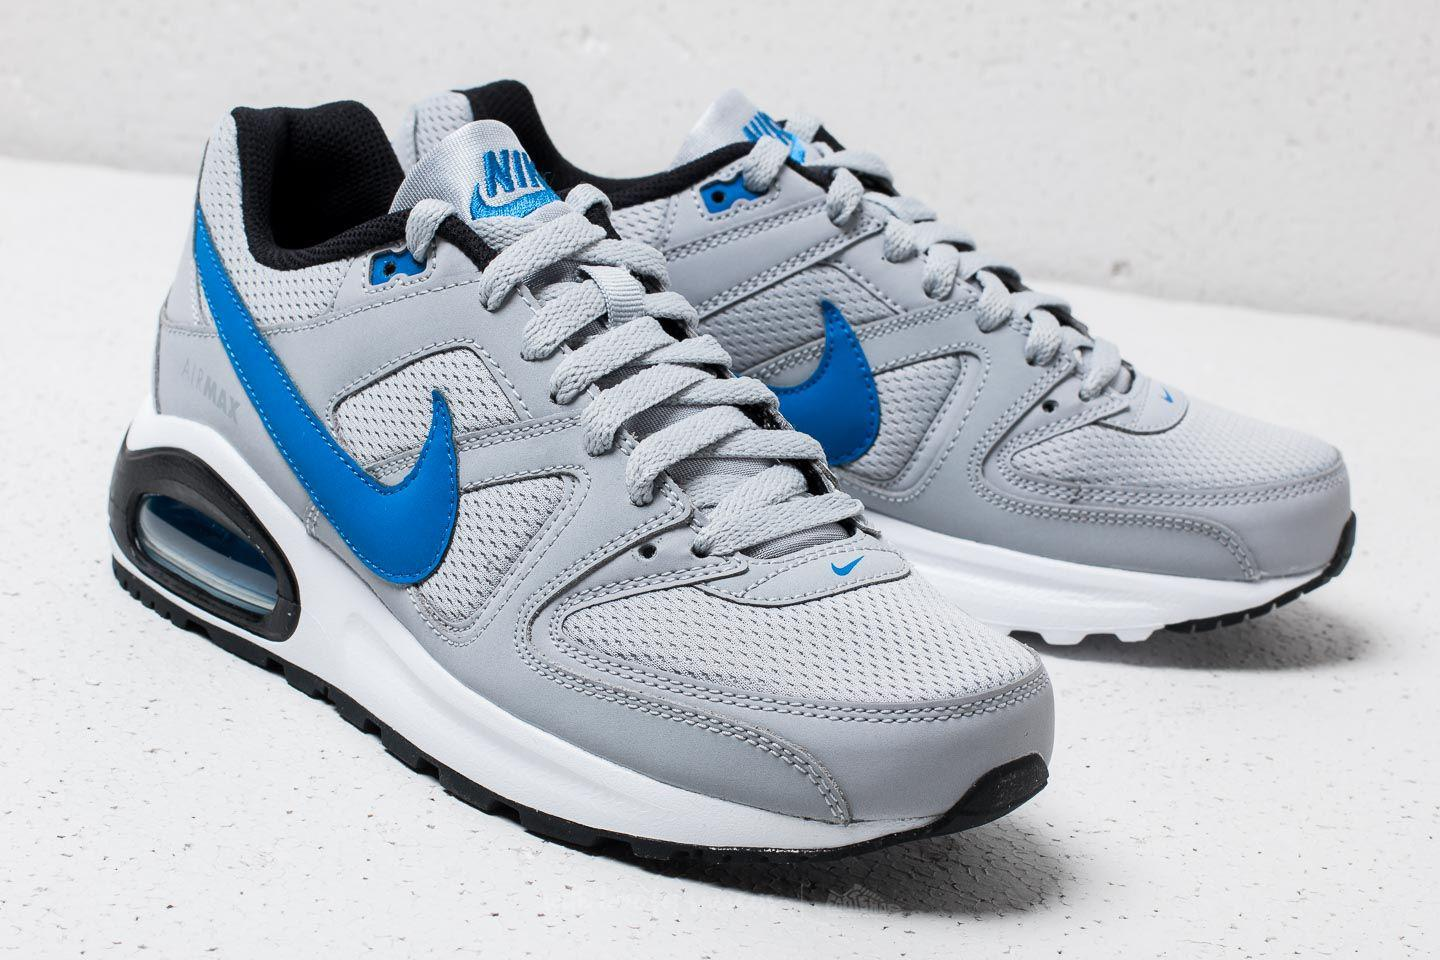 Buy Nike Air Max Command wolf greysignal blueblack from